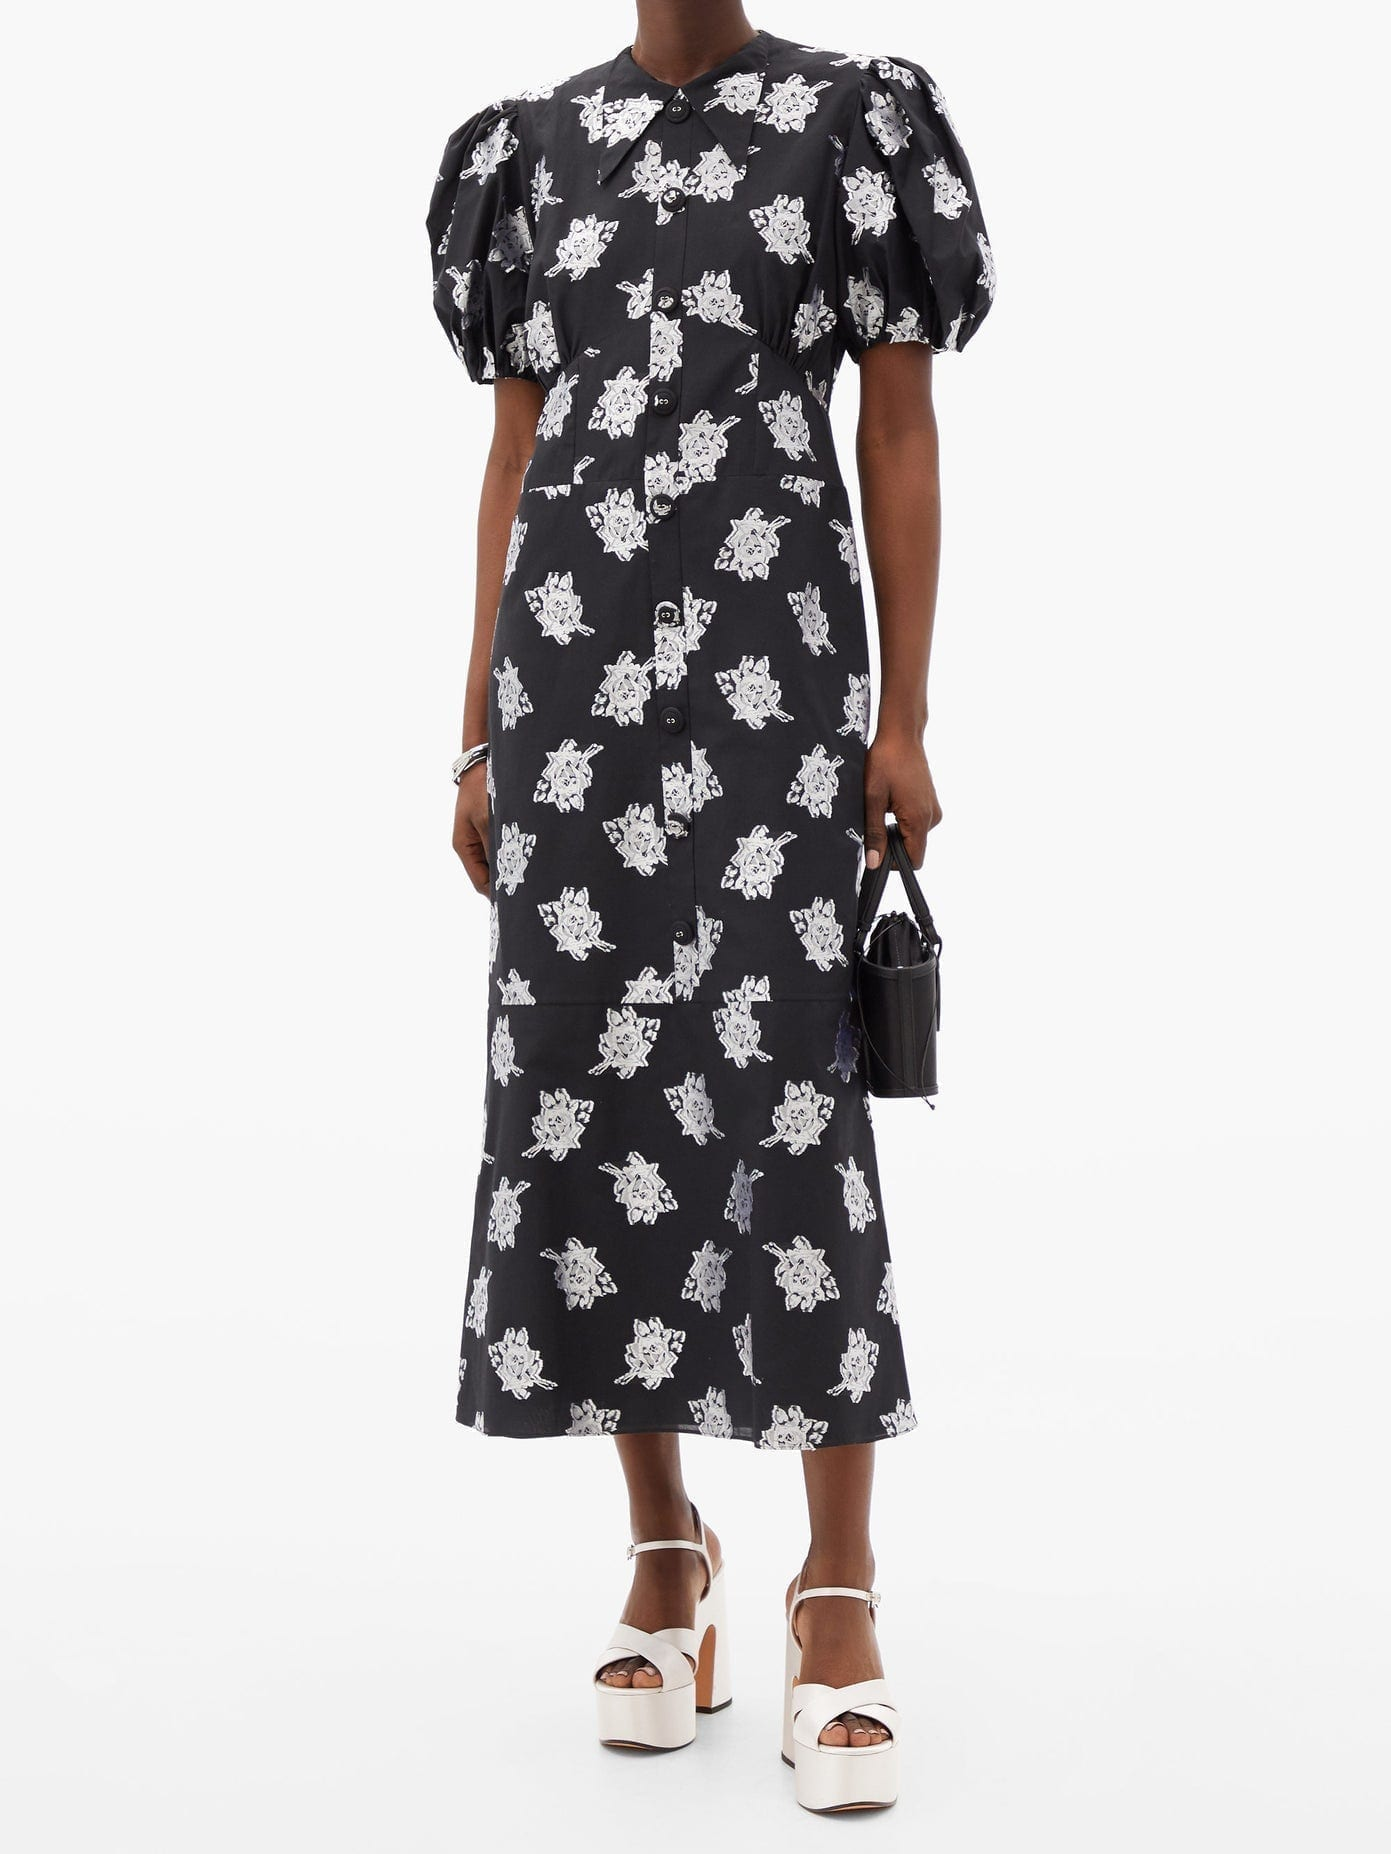 ERDEM Antonetta Floral Fil-coupé Jacquard Dress